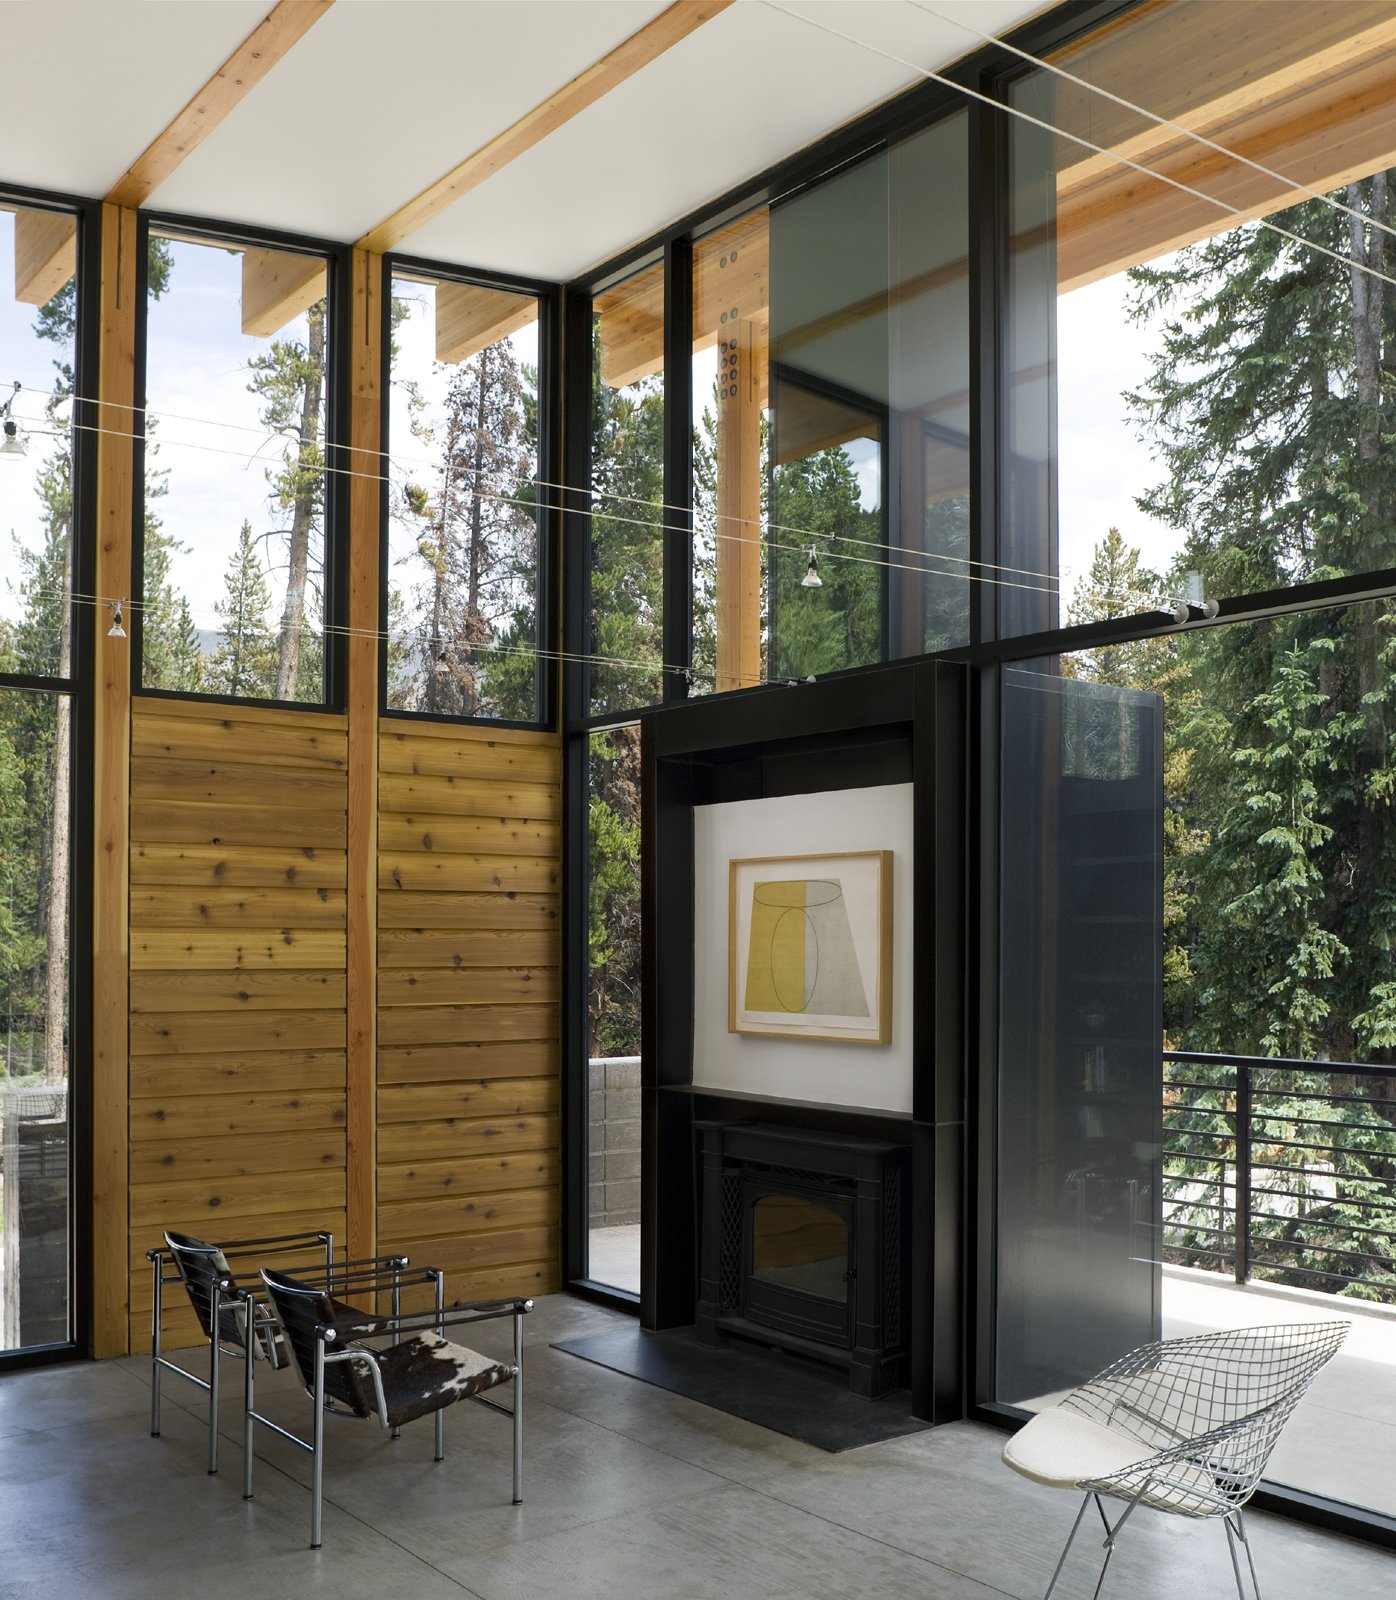 Living Room, Standard Layout Fireplace, Concrete Floor, and Chair  Weigel Residence by Substance Architecture